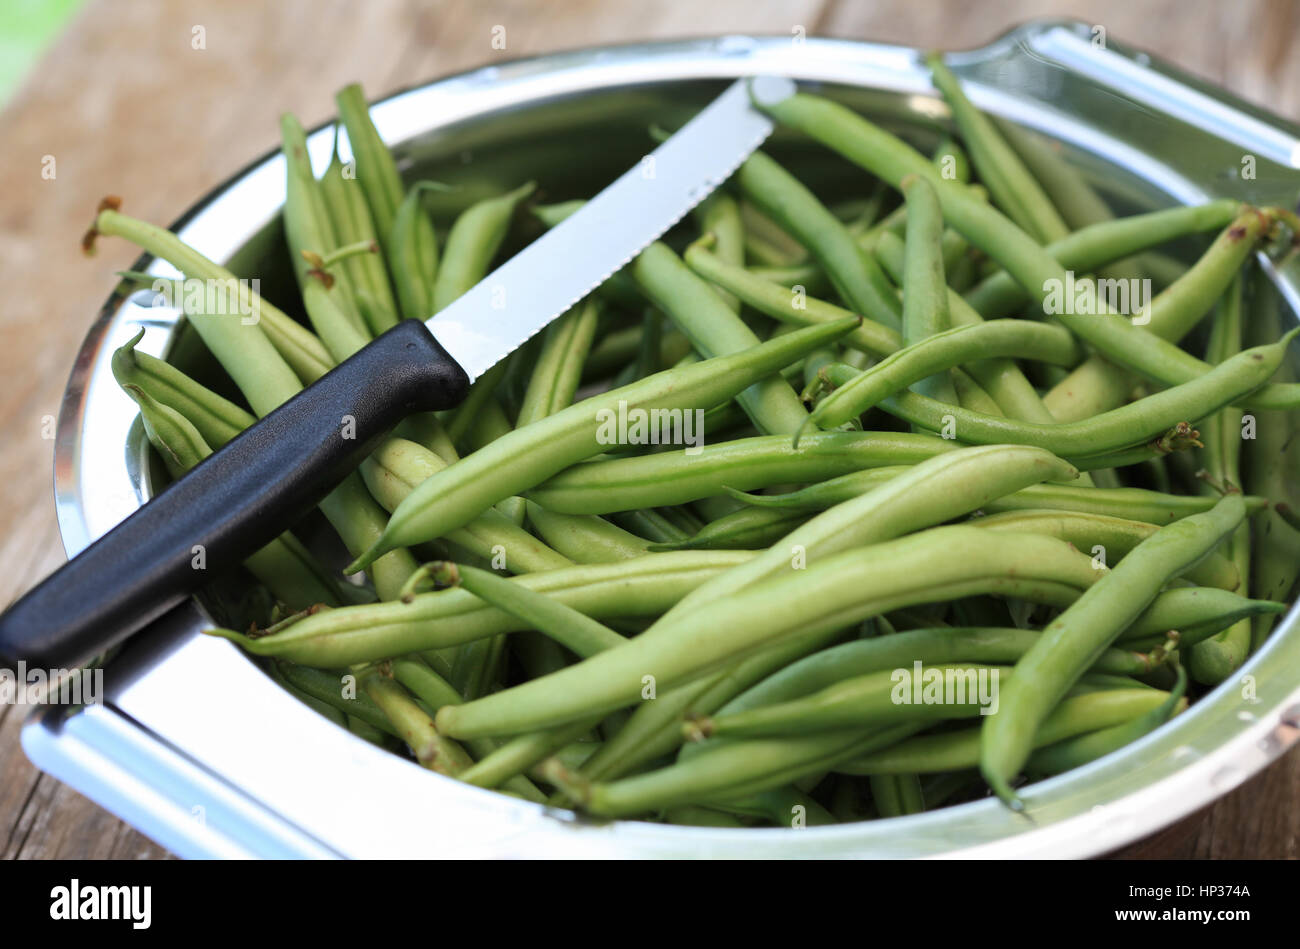 Green beans and knife in silver metal bowl - Stock Image